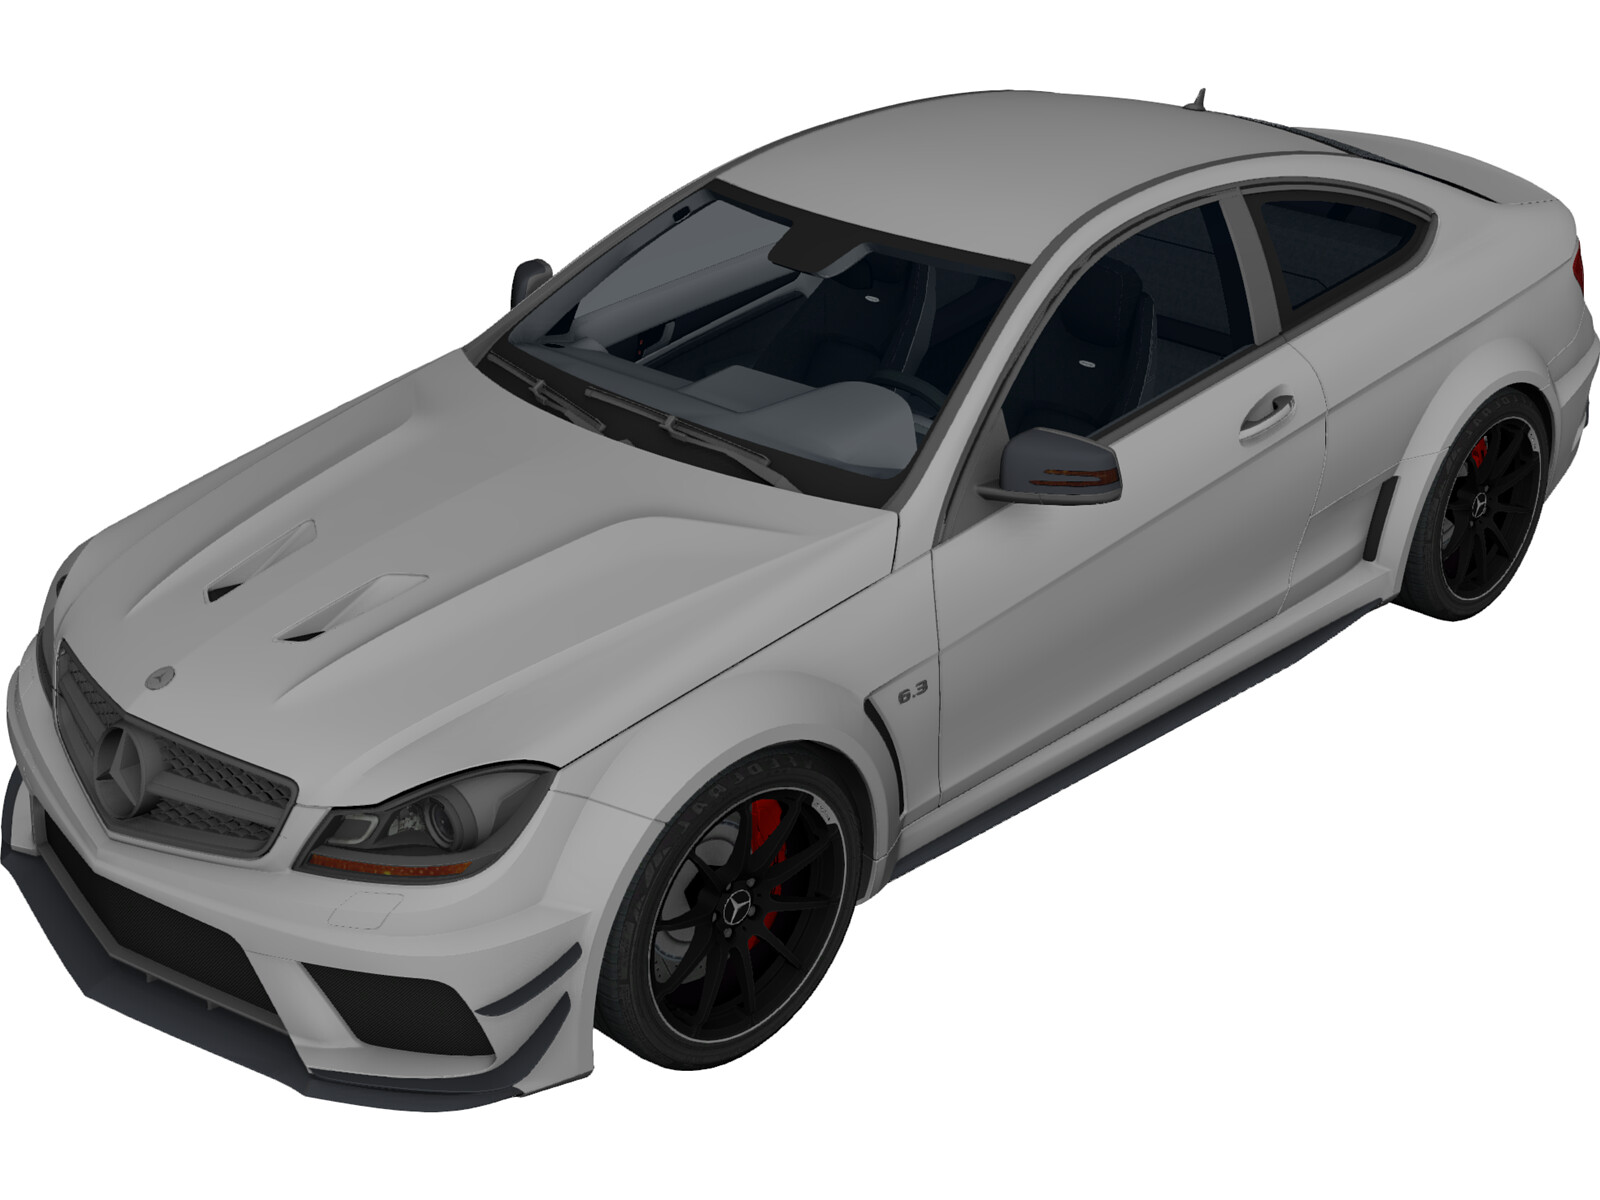 Mercedes-Benz C63 AMG Coupe 3D Model